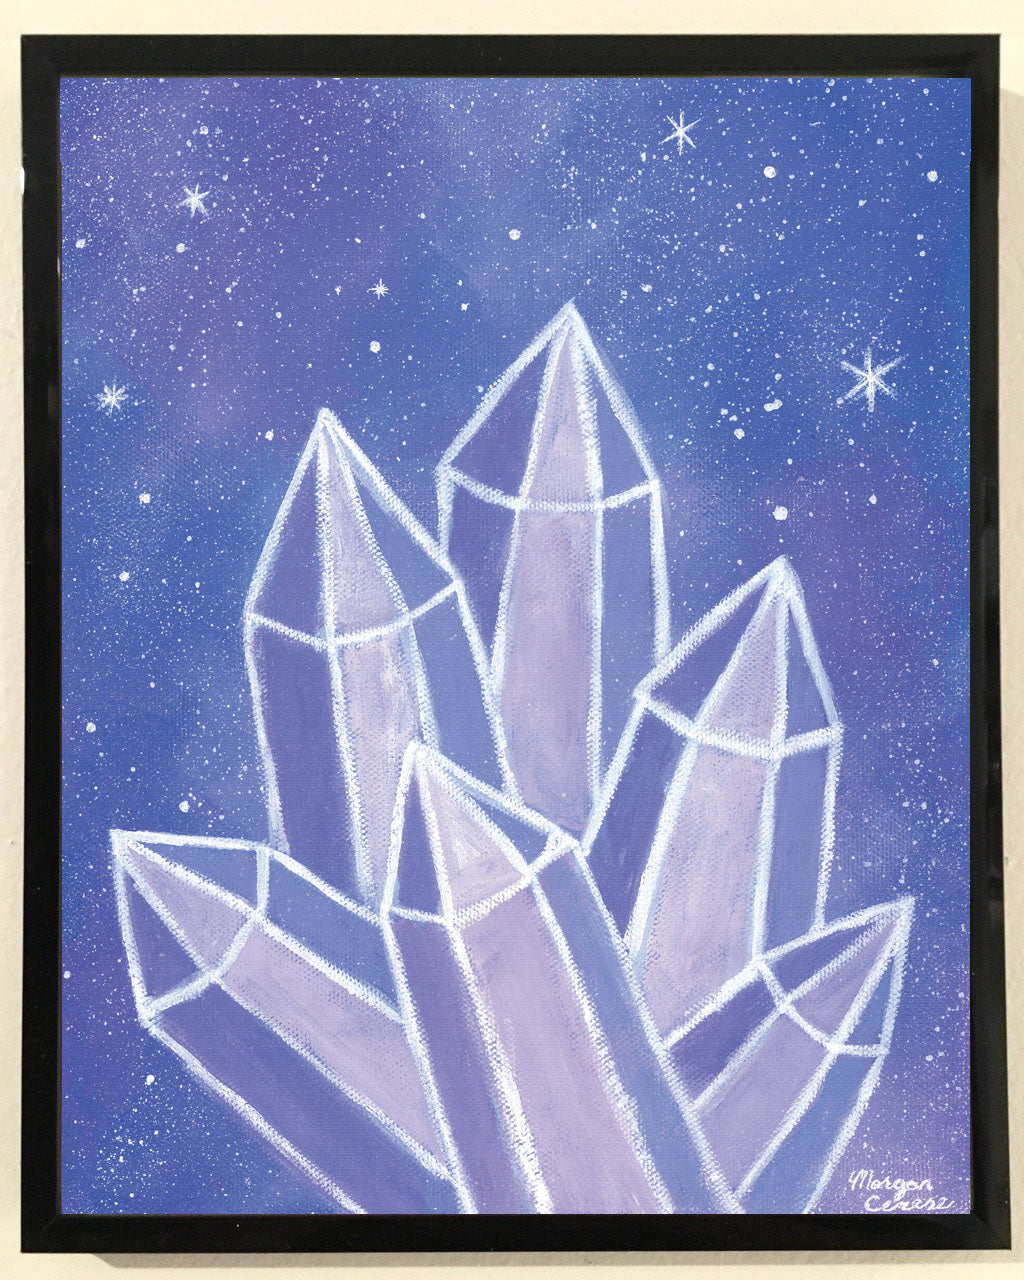 Crystalline Growth Print - 8x10 inches